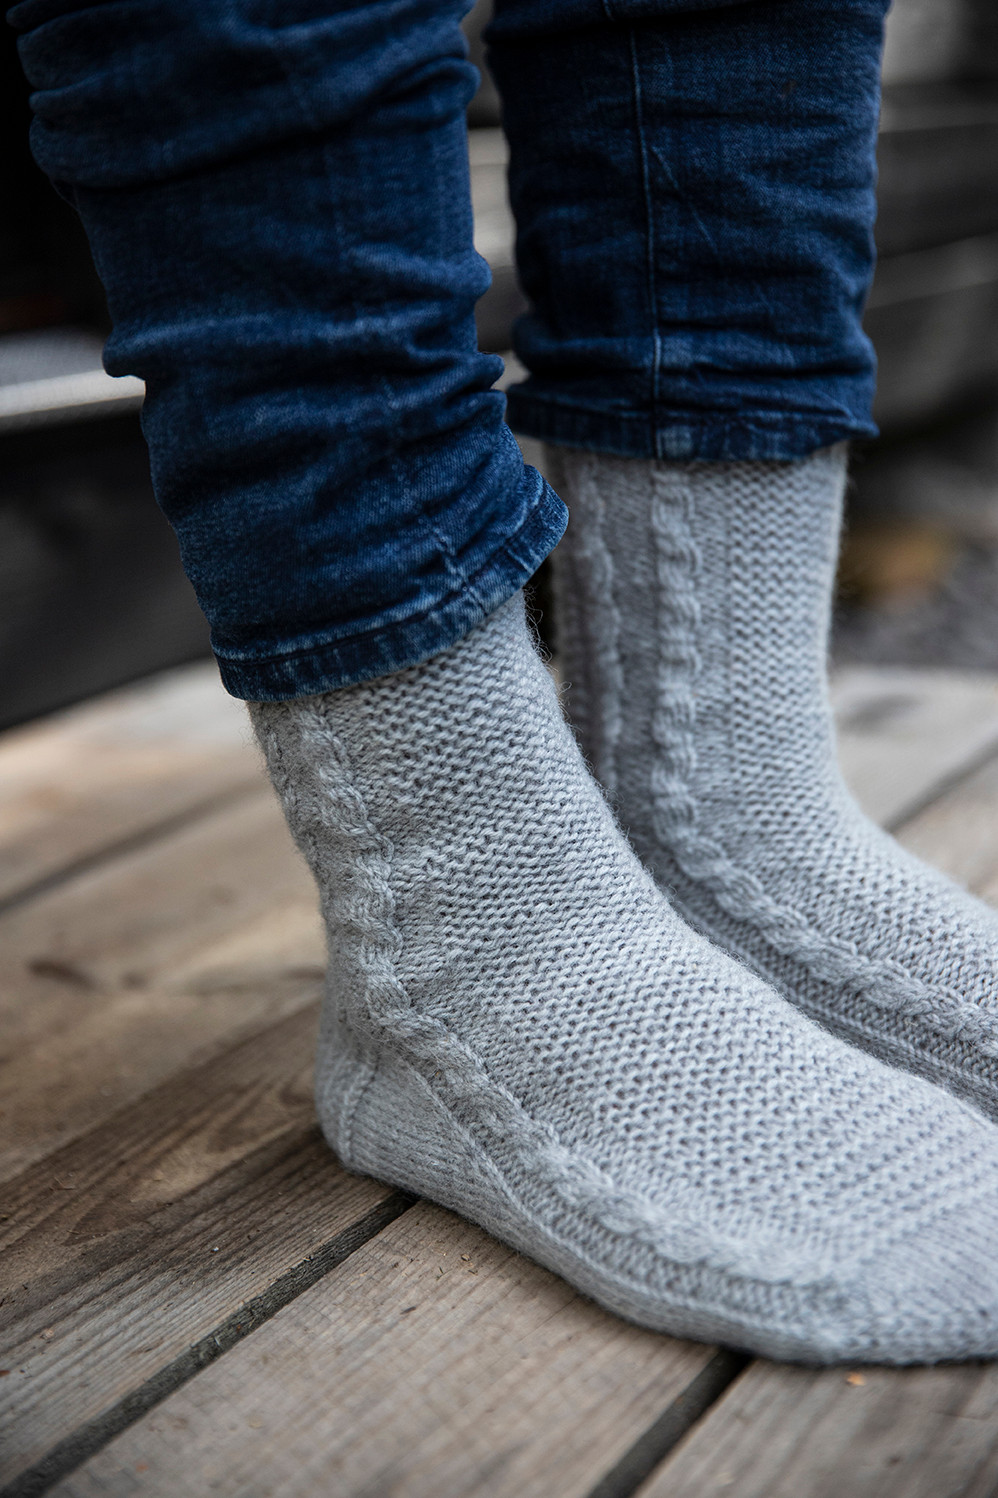 Juhani's socks feature a garter stitch panel flanked by narrow cables.